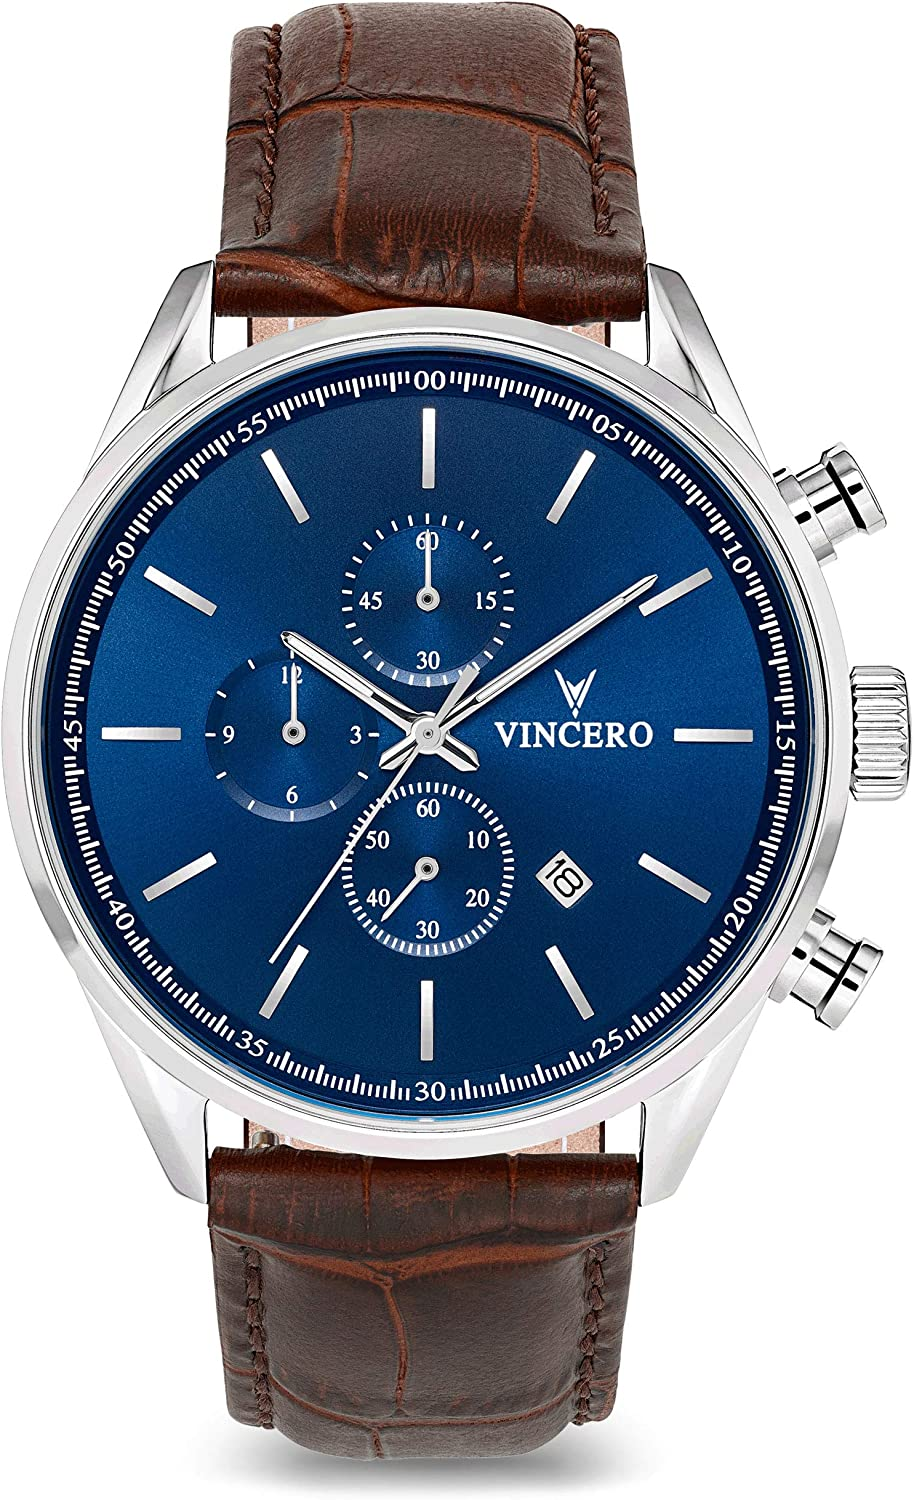 Vincero Luxury Men s Chrono S Wrist Watch – Blue dial with Brown Leather